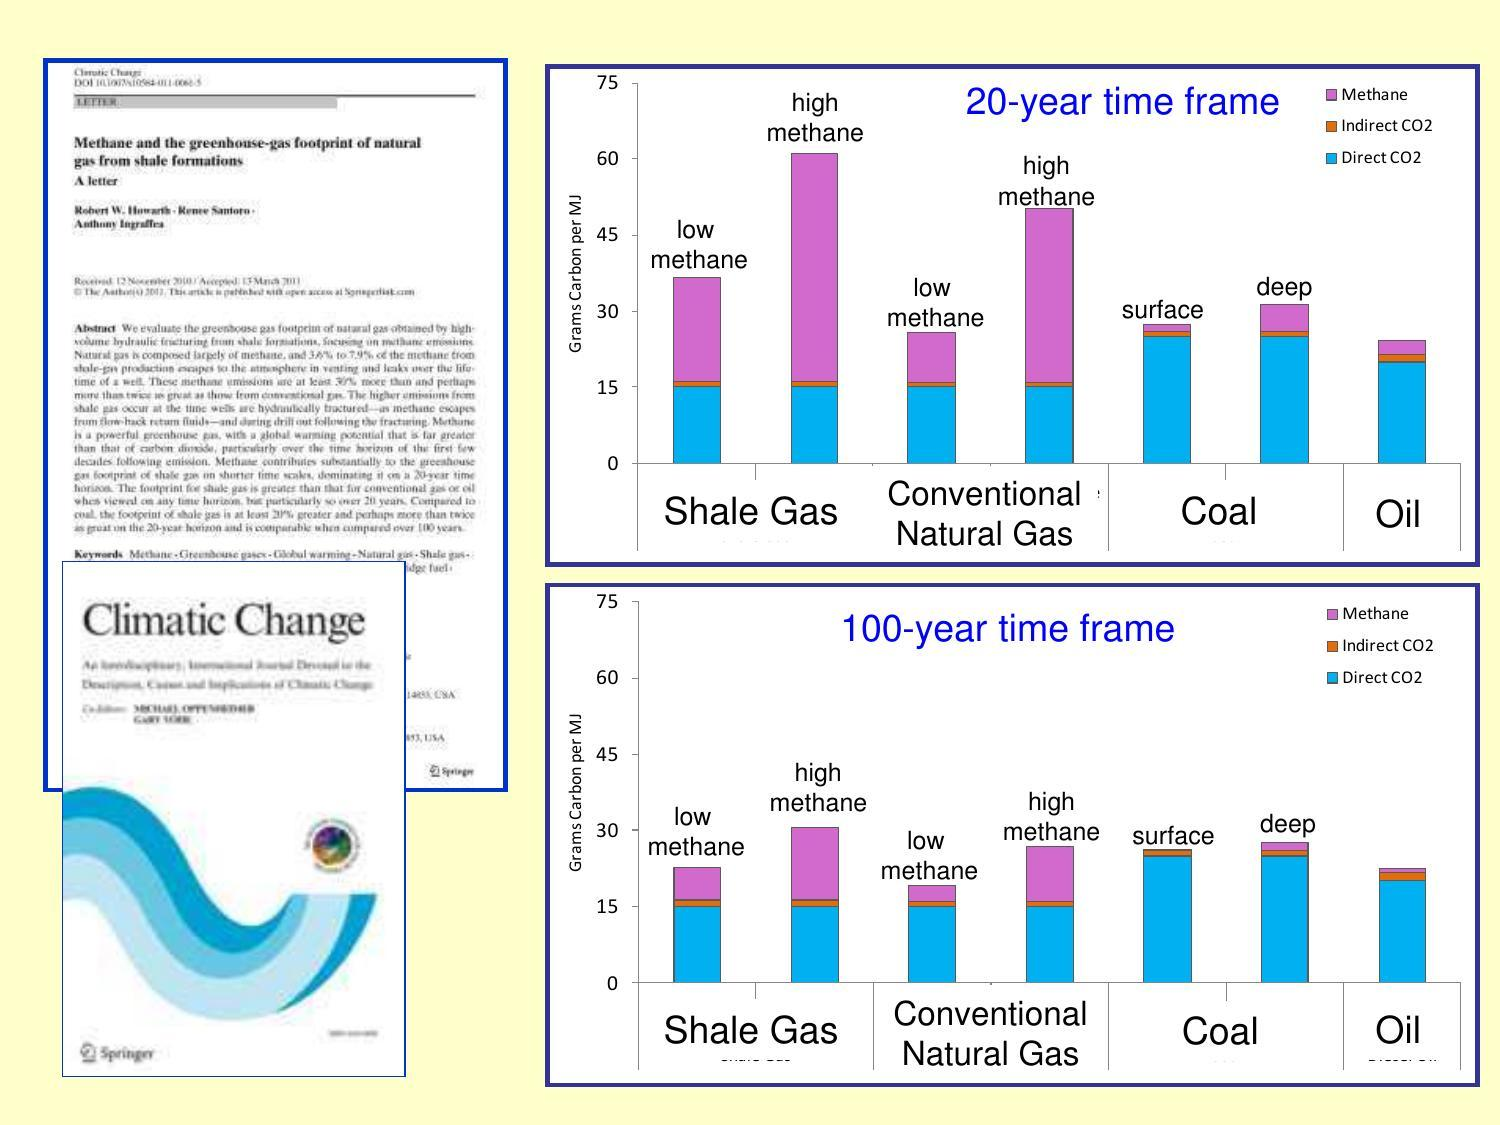 1500x1125 CH4 + CO2, in Still A Bridge to Nowhere: Methane Emissions and the Greenhouse Gas Footprint of Natural Gas, by Bob Howarth and Tony lngraffea, 14 April 2015